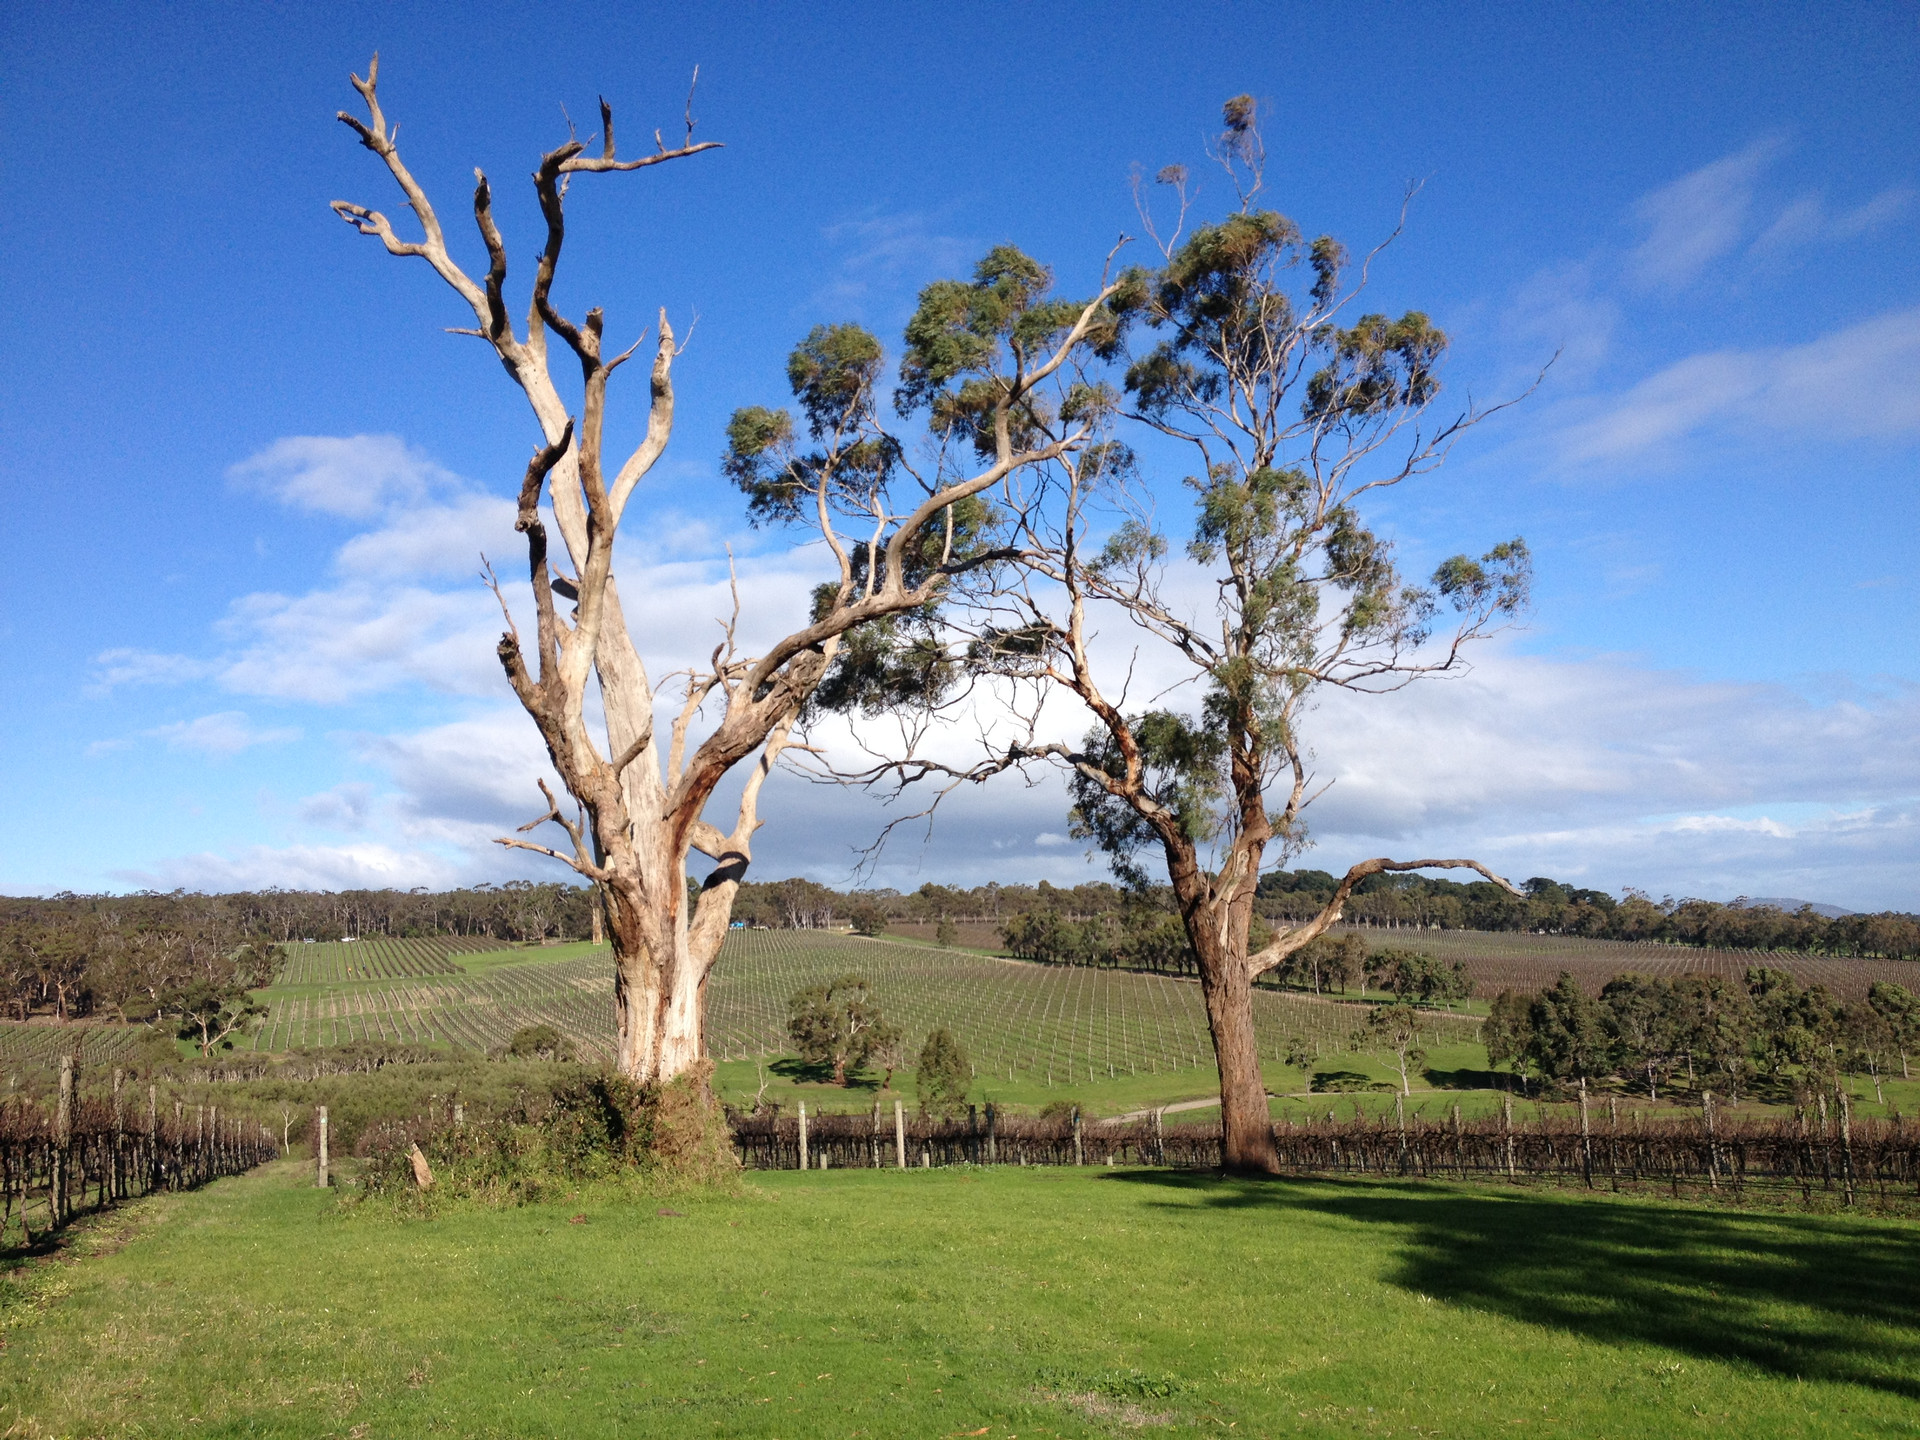 Gum trees in the vineyard